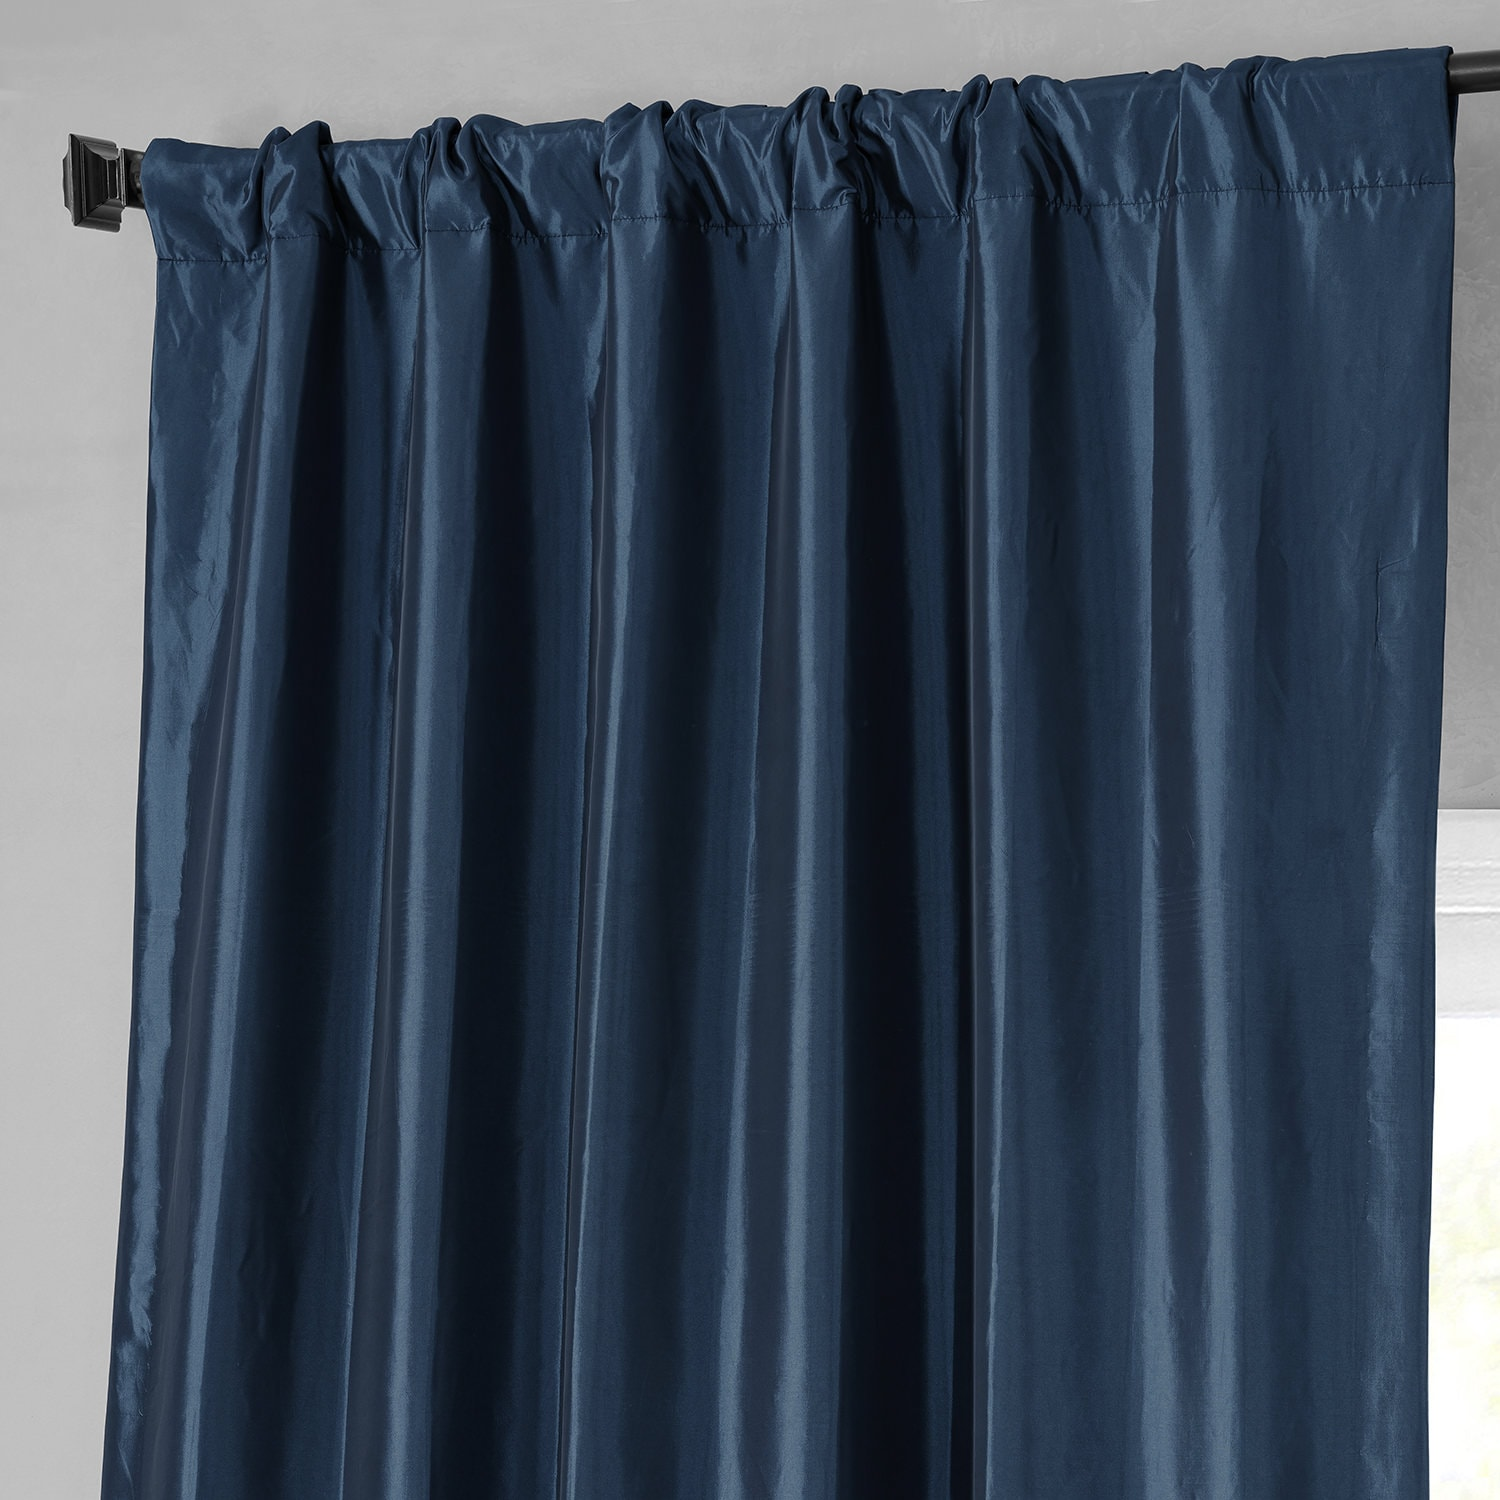 Buy Navy Blue Faux Silk Taffeta Curtains Amp Drapes